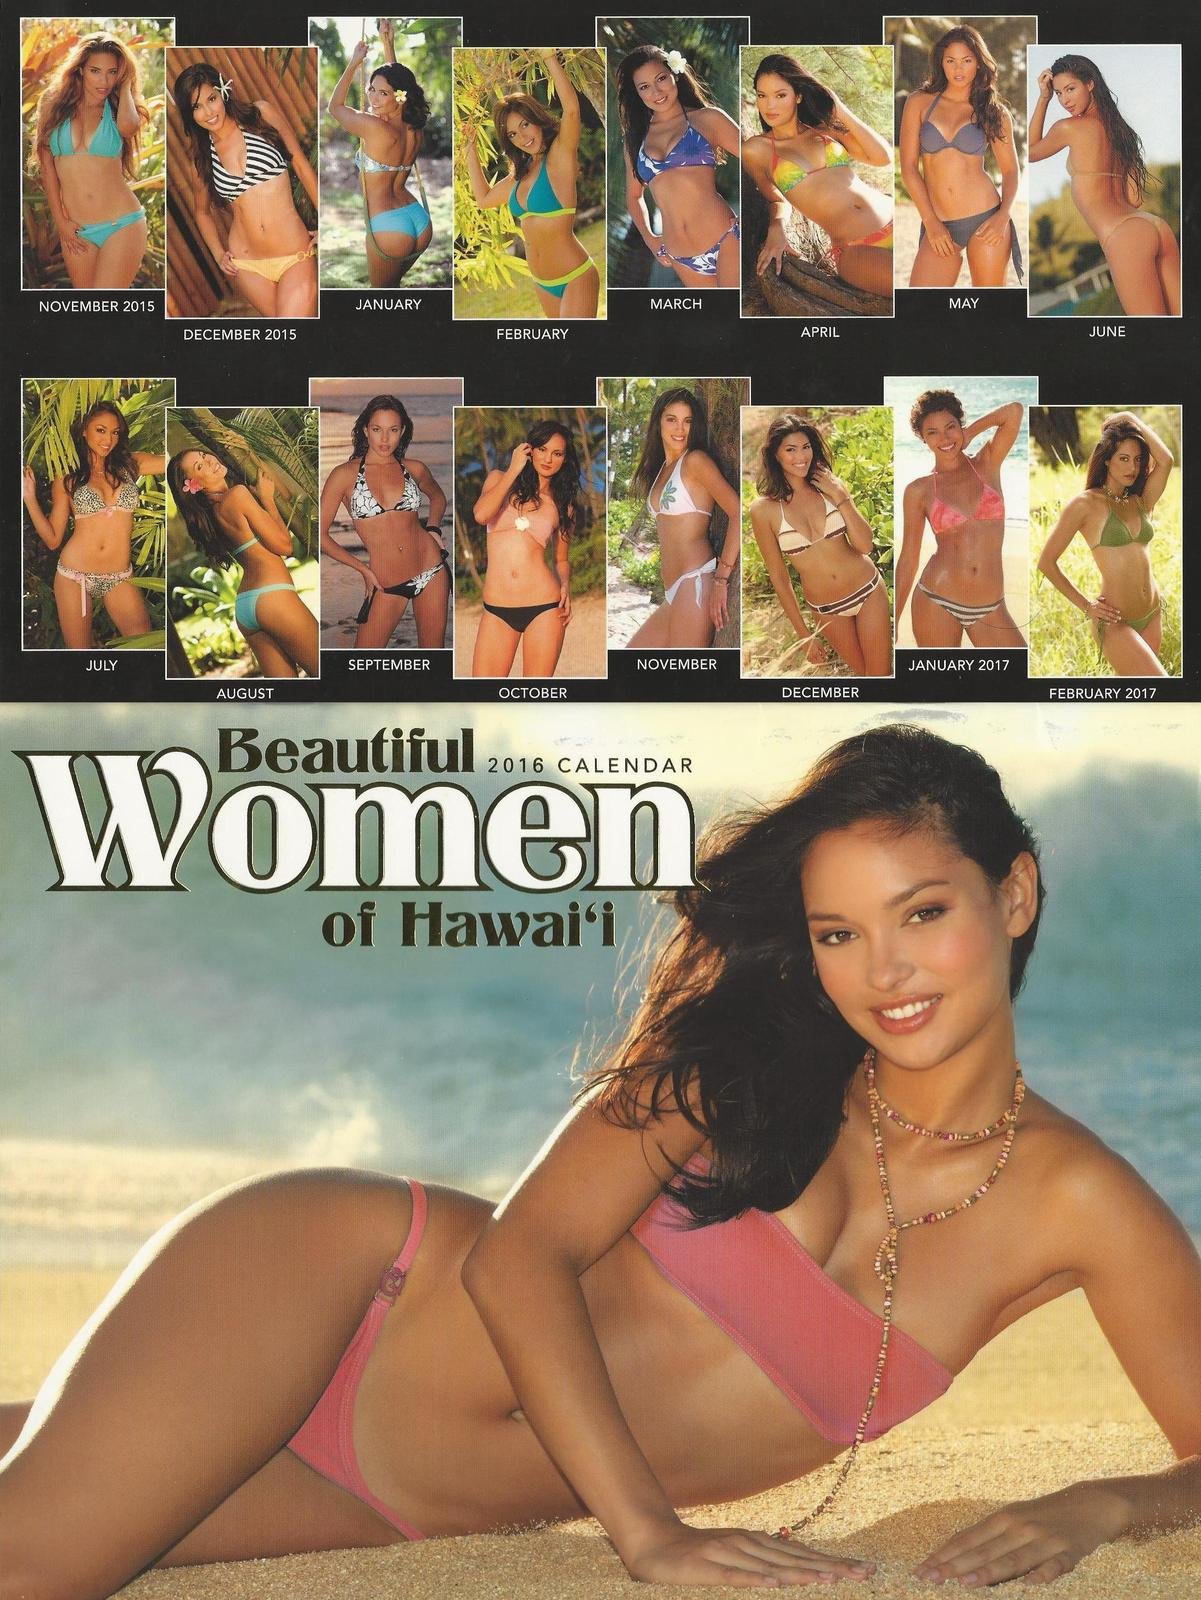 2016 Hawaii Calendar Beautiful Women Of And 50 Similar Items